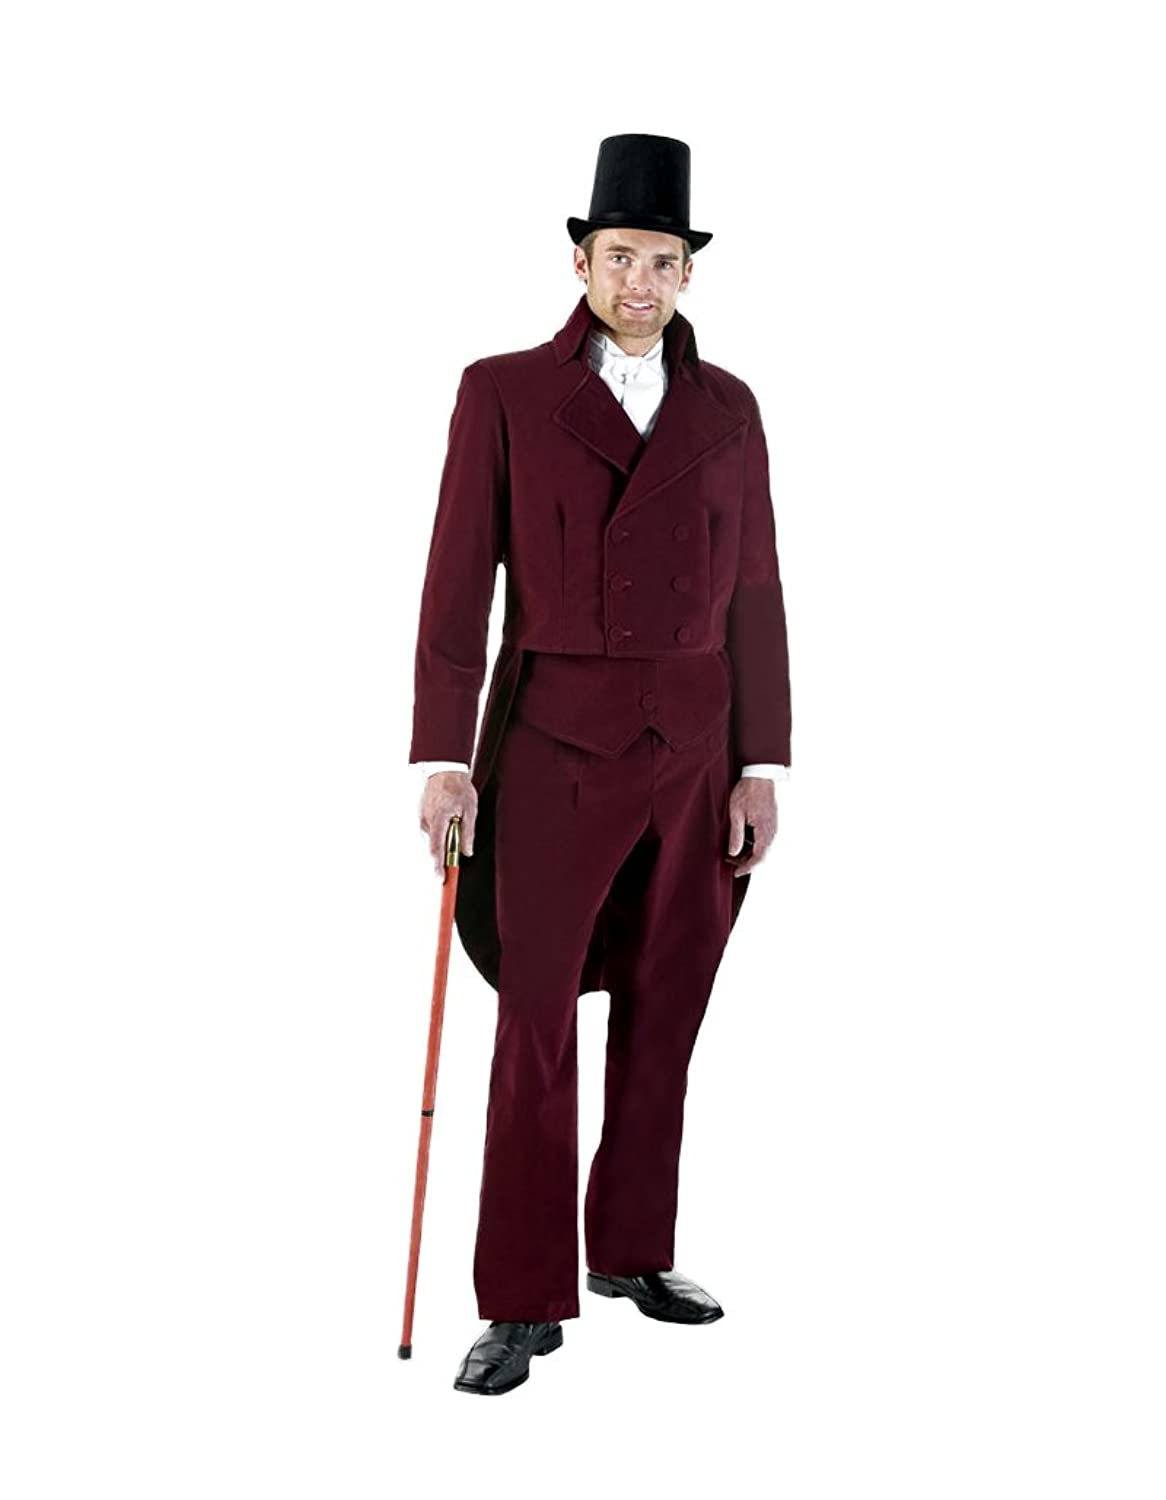 Victorian Men's Tuxedo, Tailcoats, Formalwear Guide Tabis Characters Mens Charles Dickens Caroler Tail Suit Theater Costume  AT vintagedancer.com